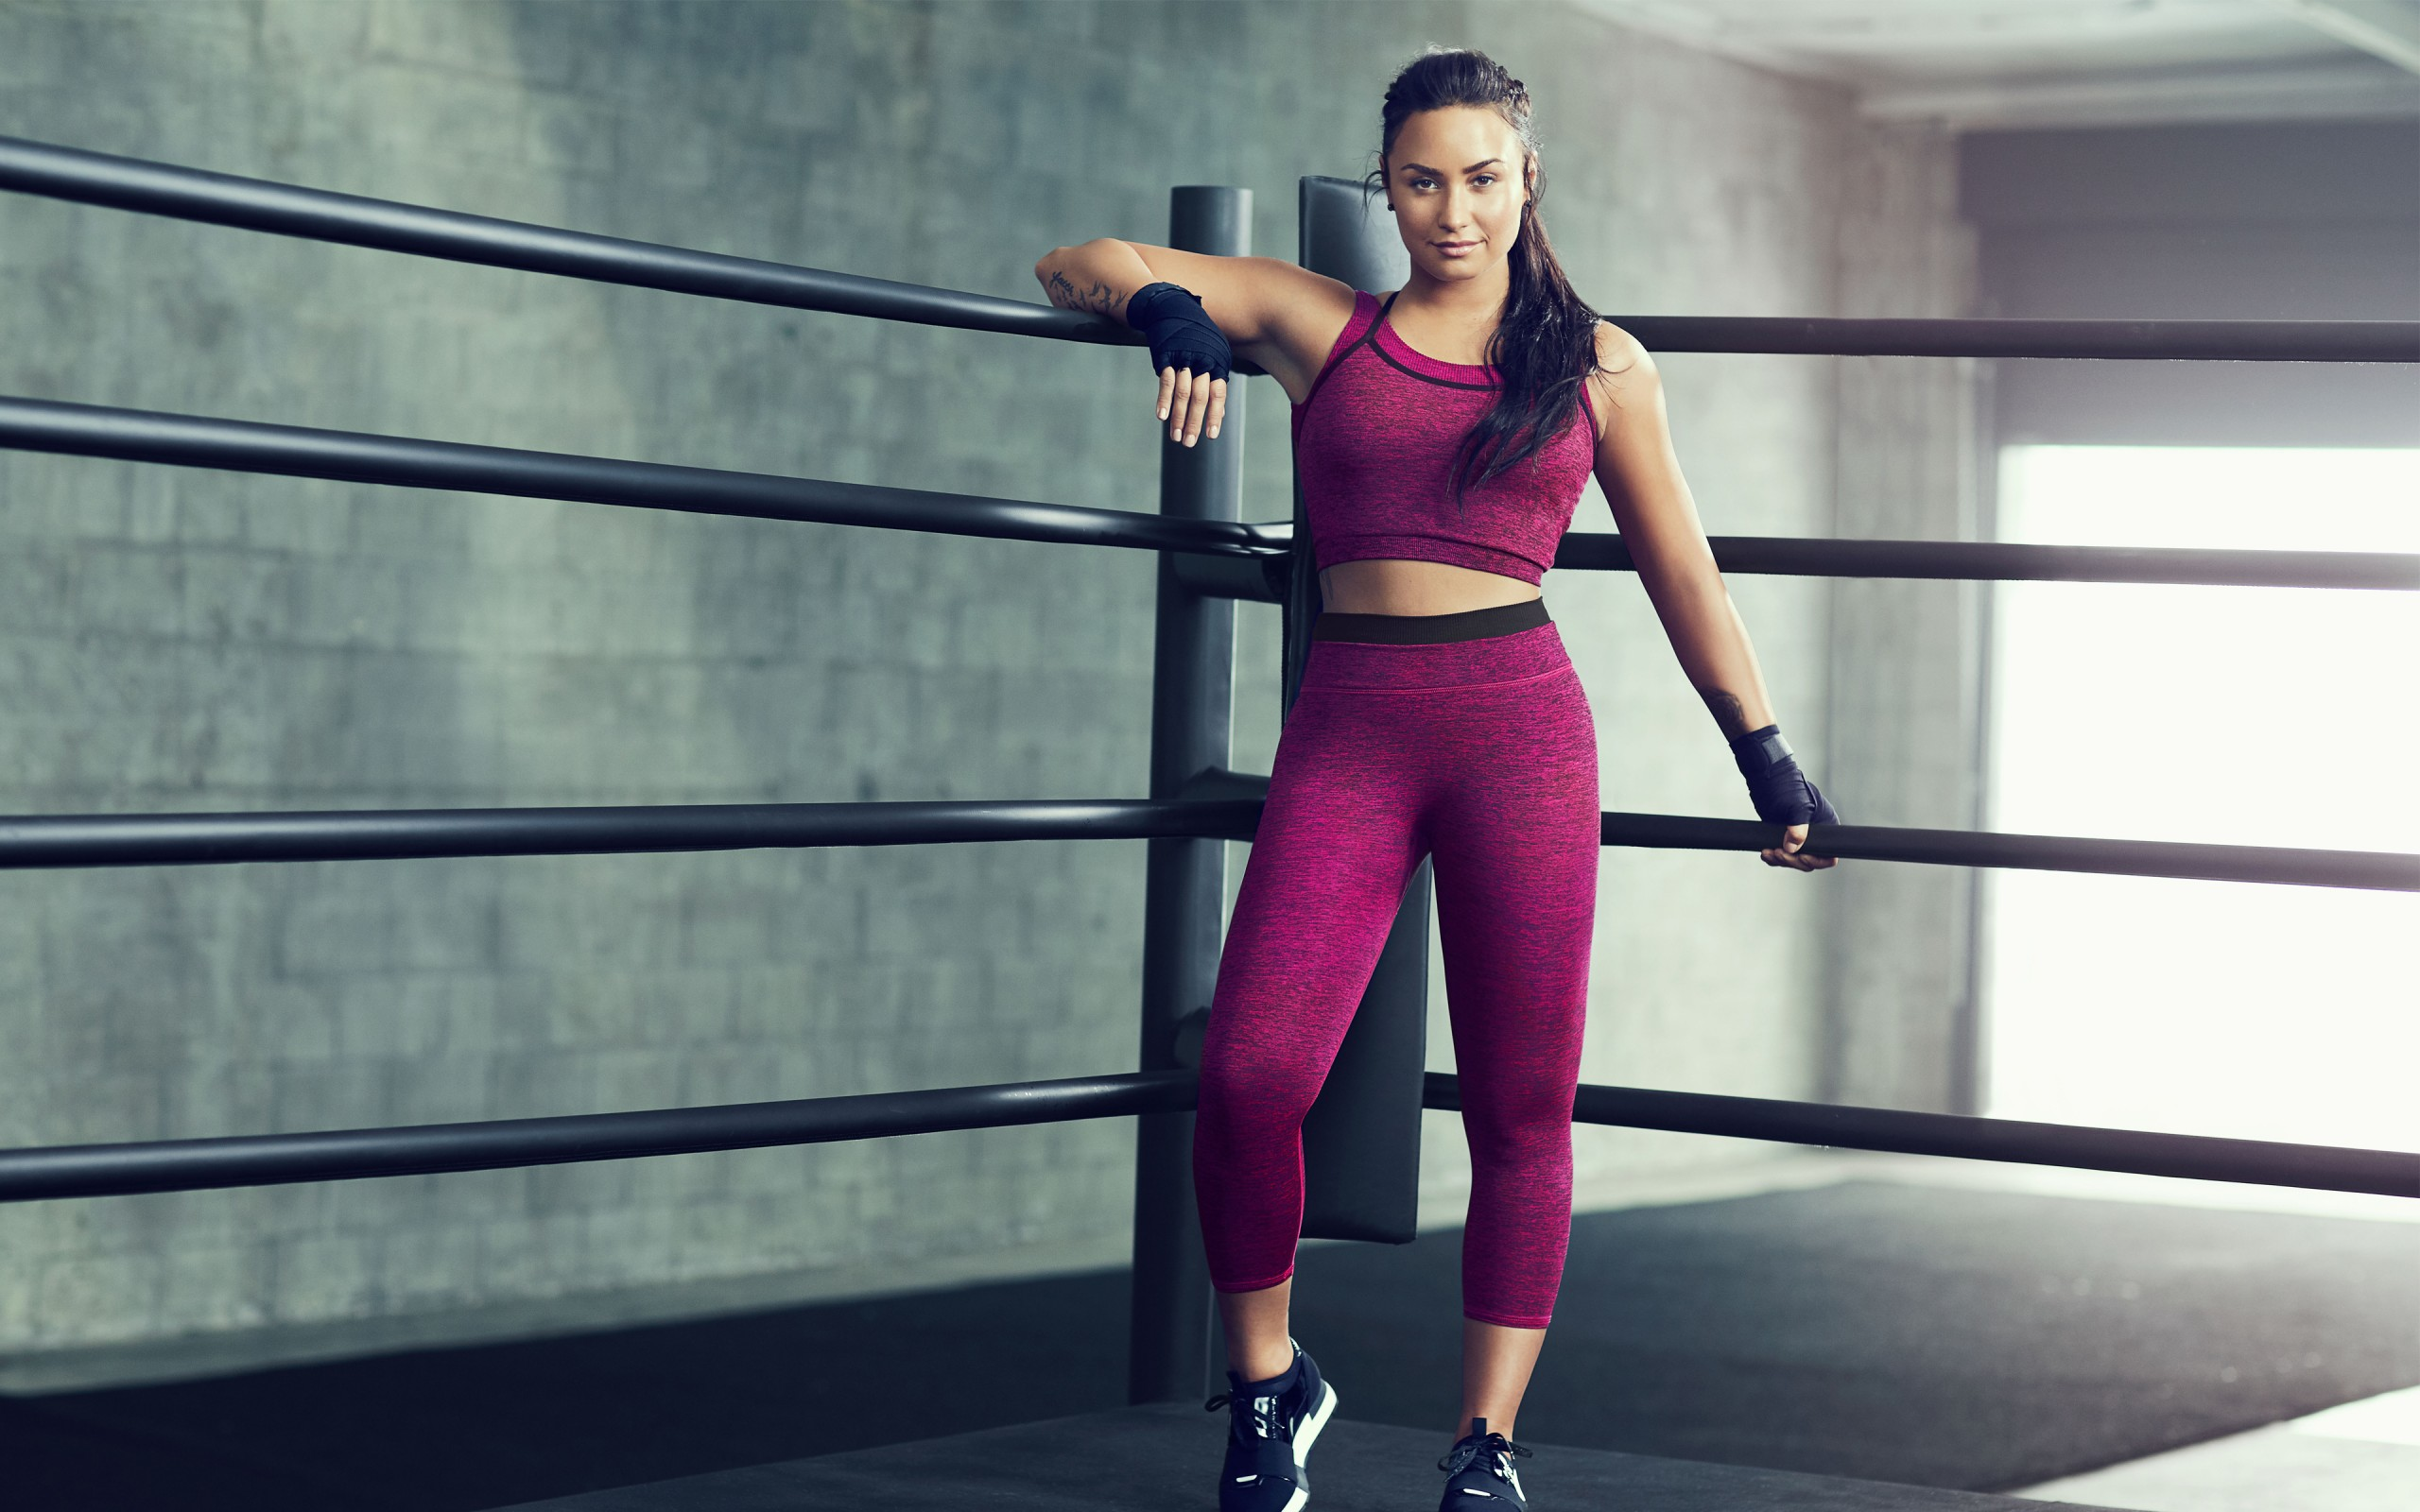 Fall Wallpaper For Iphone 6 Plus Demi Lovato Fabletics Workout 4k Wallpapers Hd